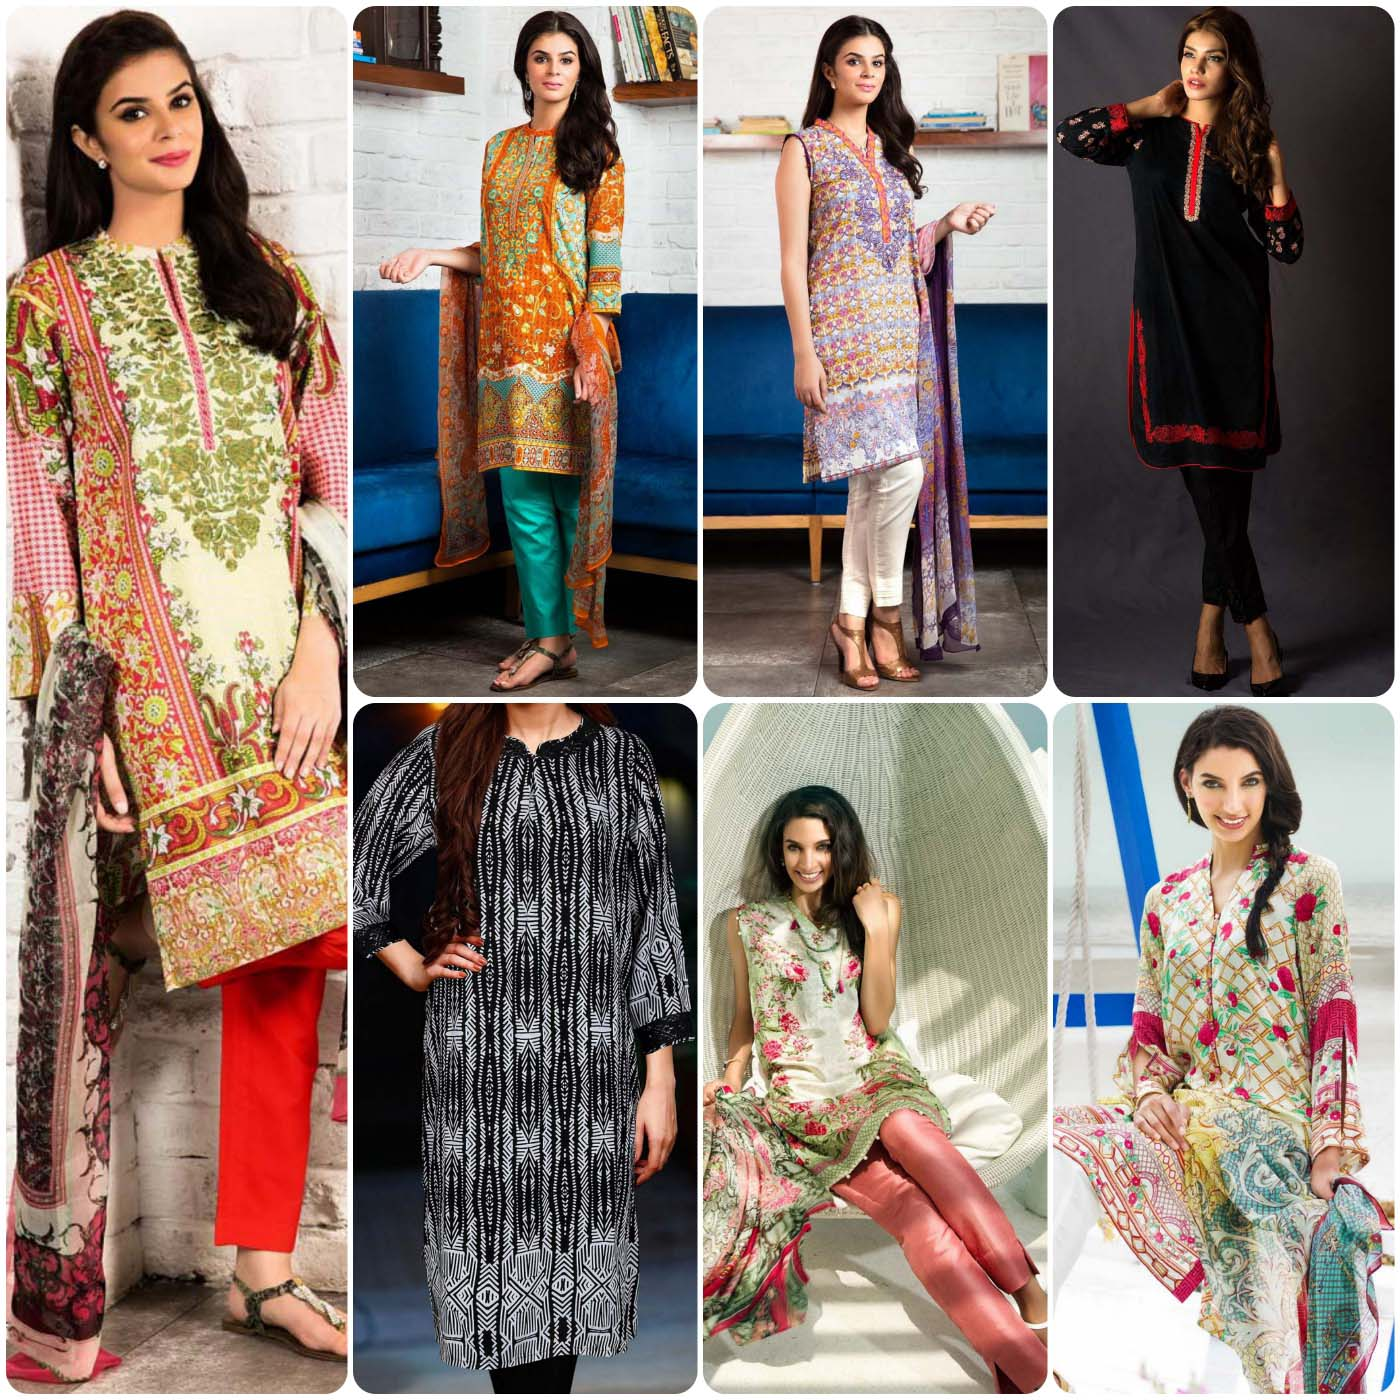 684544c2b6 Latest Zeen By Cambridge Winter Collection | Stylo Planet